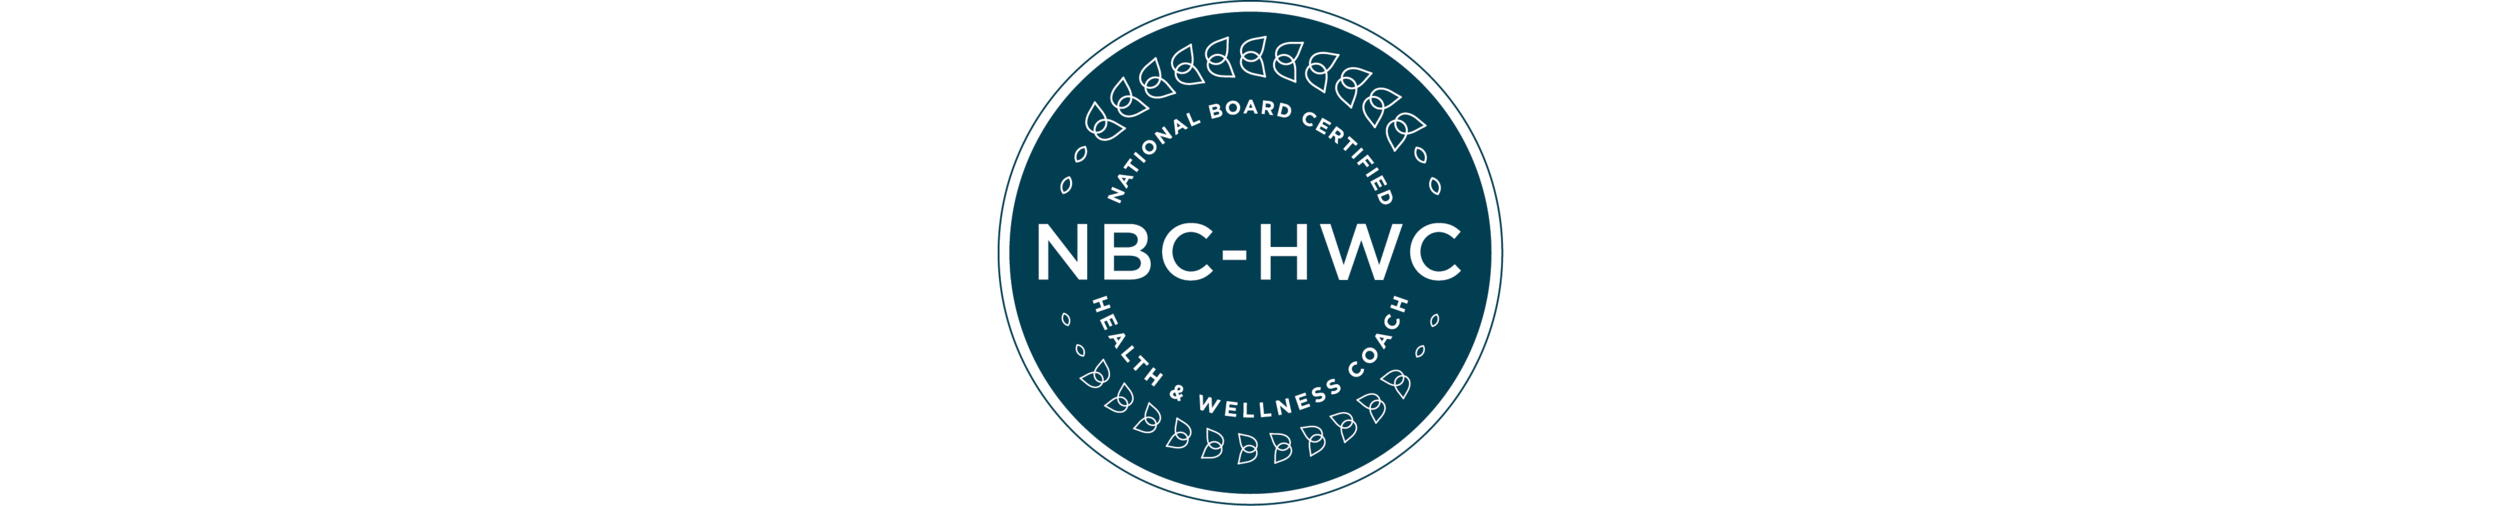 Boardd Certified Health Coach